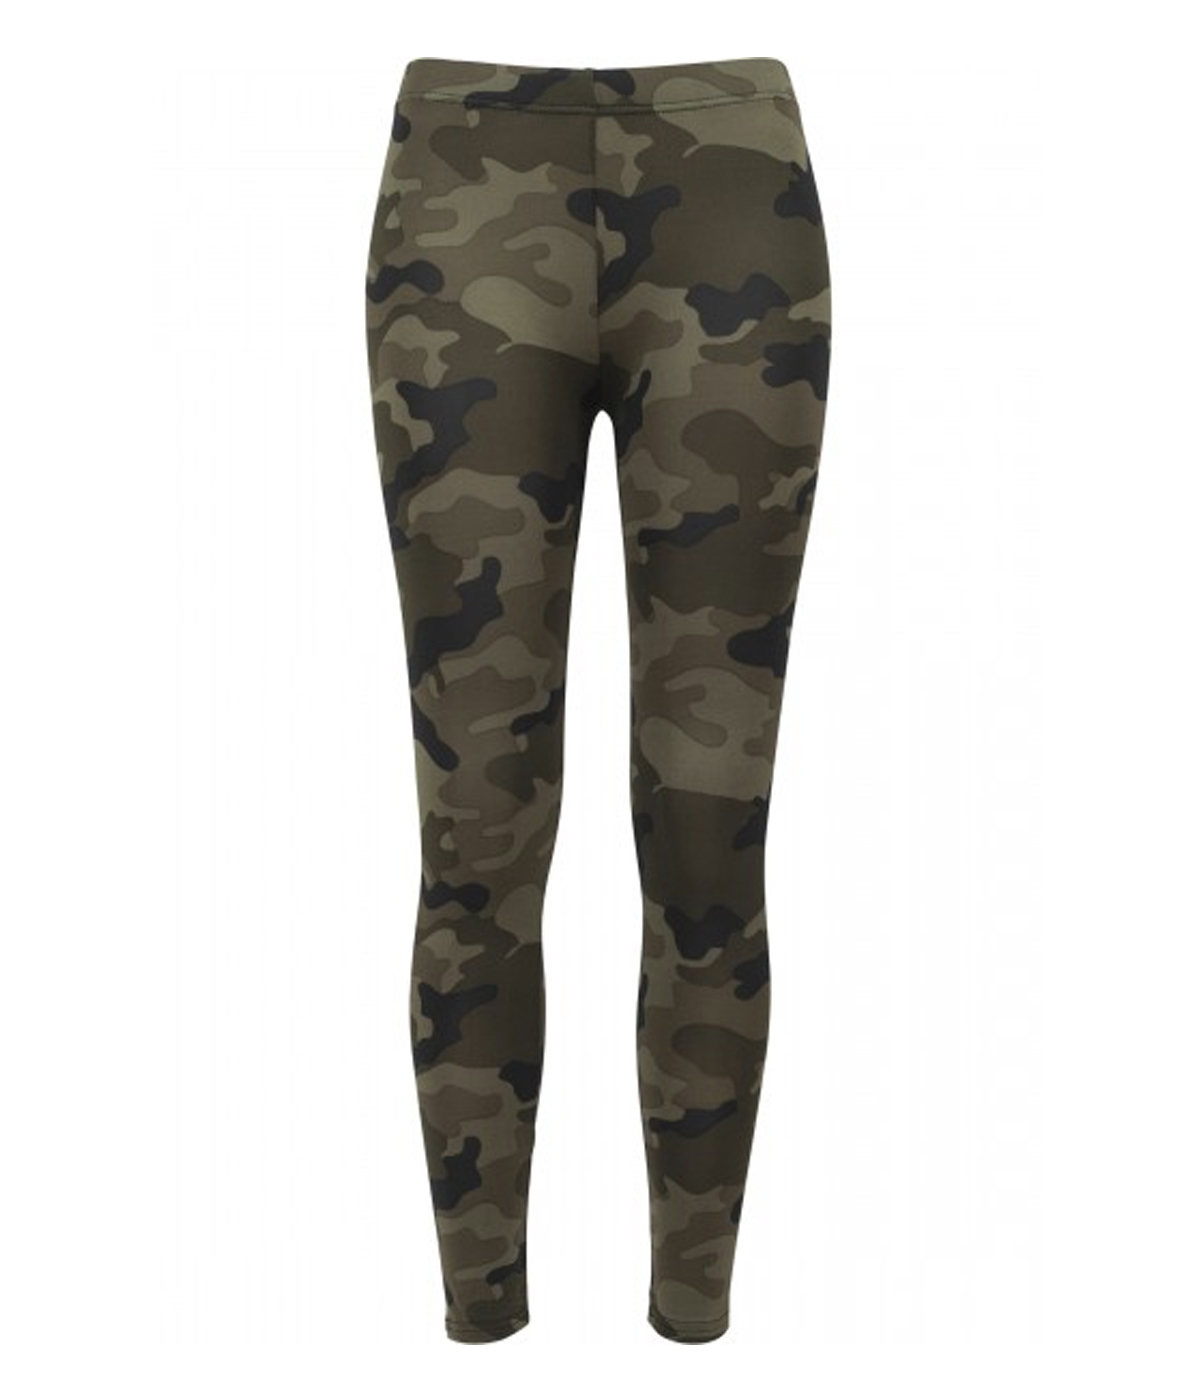 LEGGINGS CAMUFLAJE VERDE